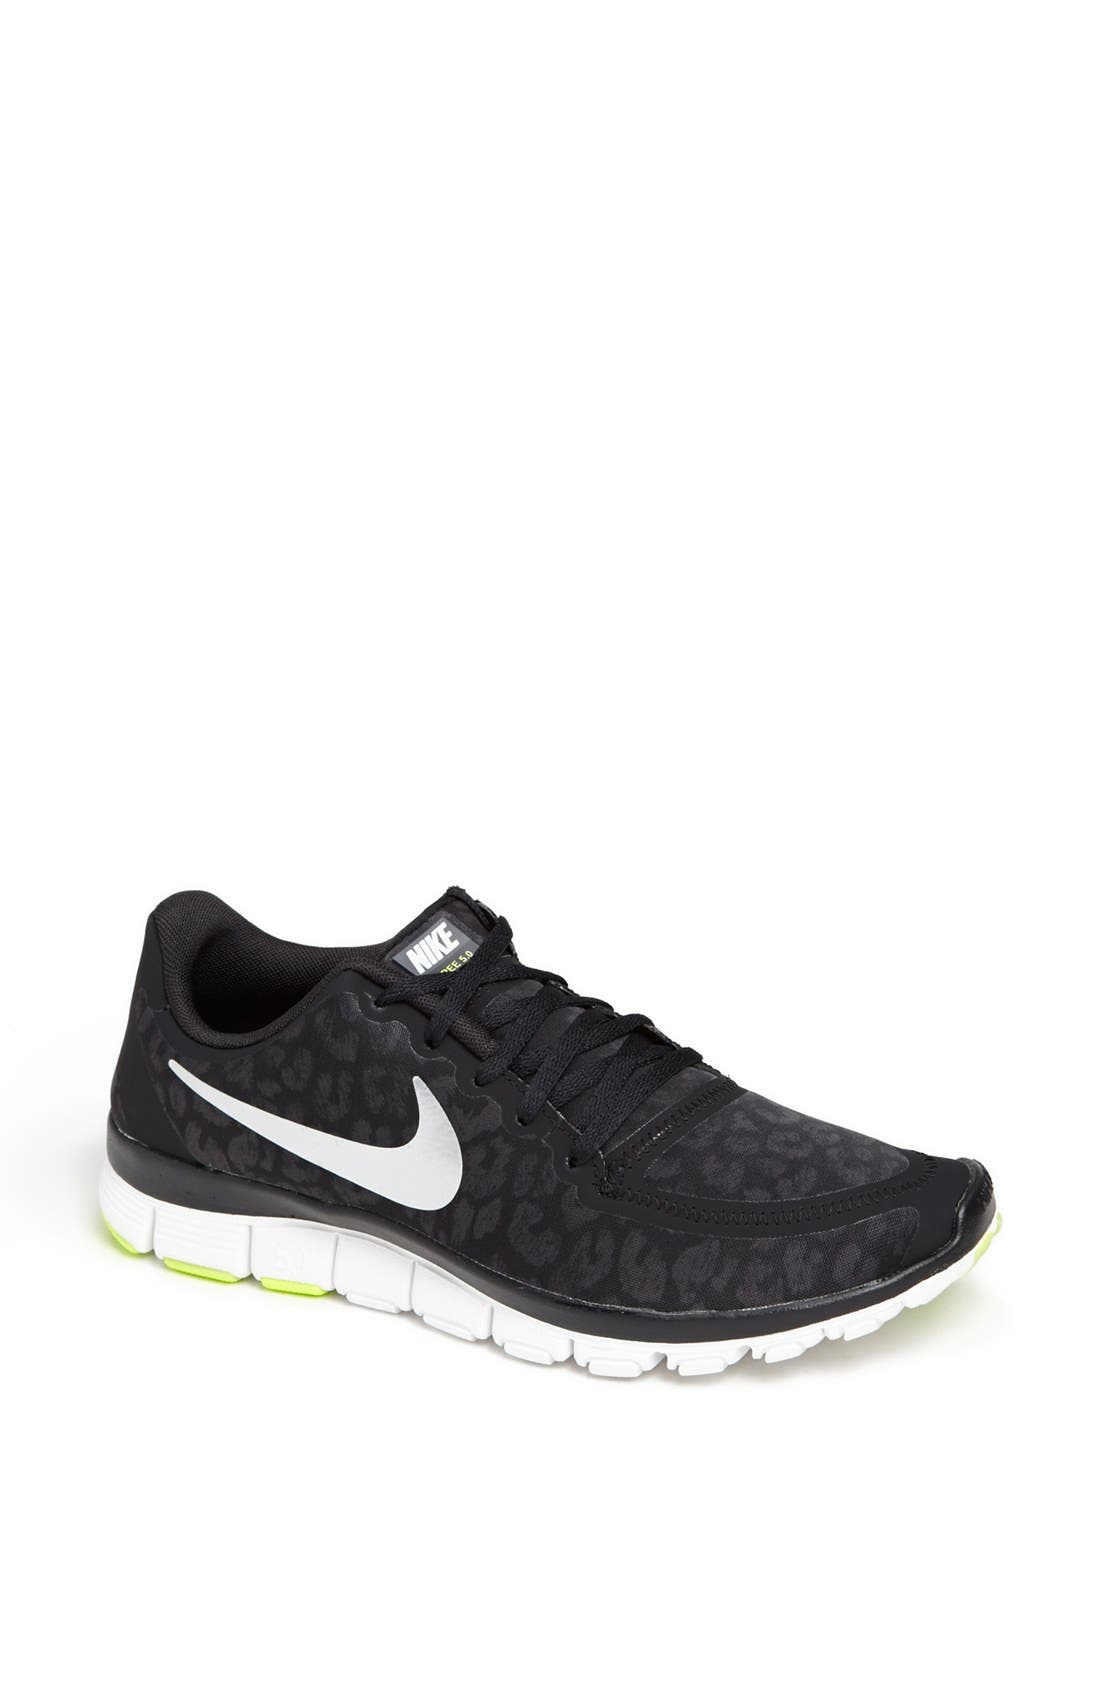 Main Image - Nike 'Free 5.0 V4' Running Shoe (Women)